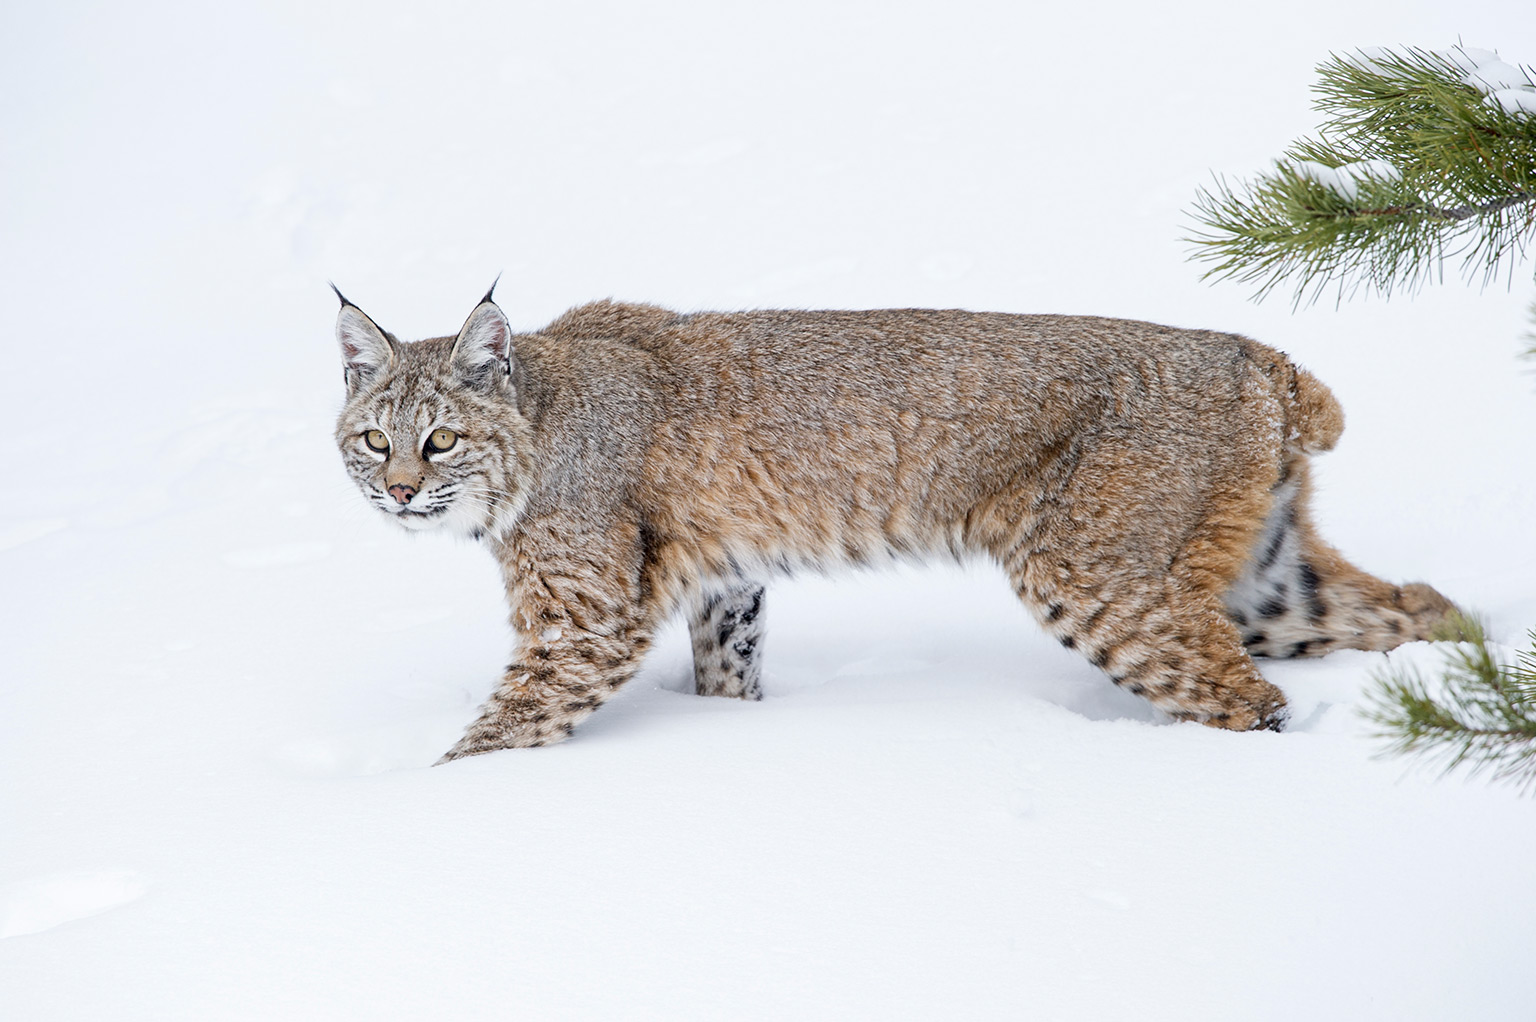 Bobcat in the snow. Photo credit: Nick Garbutt